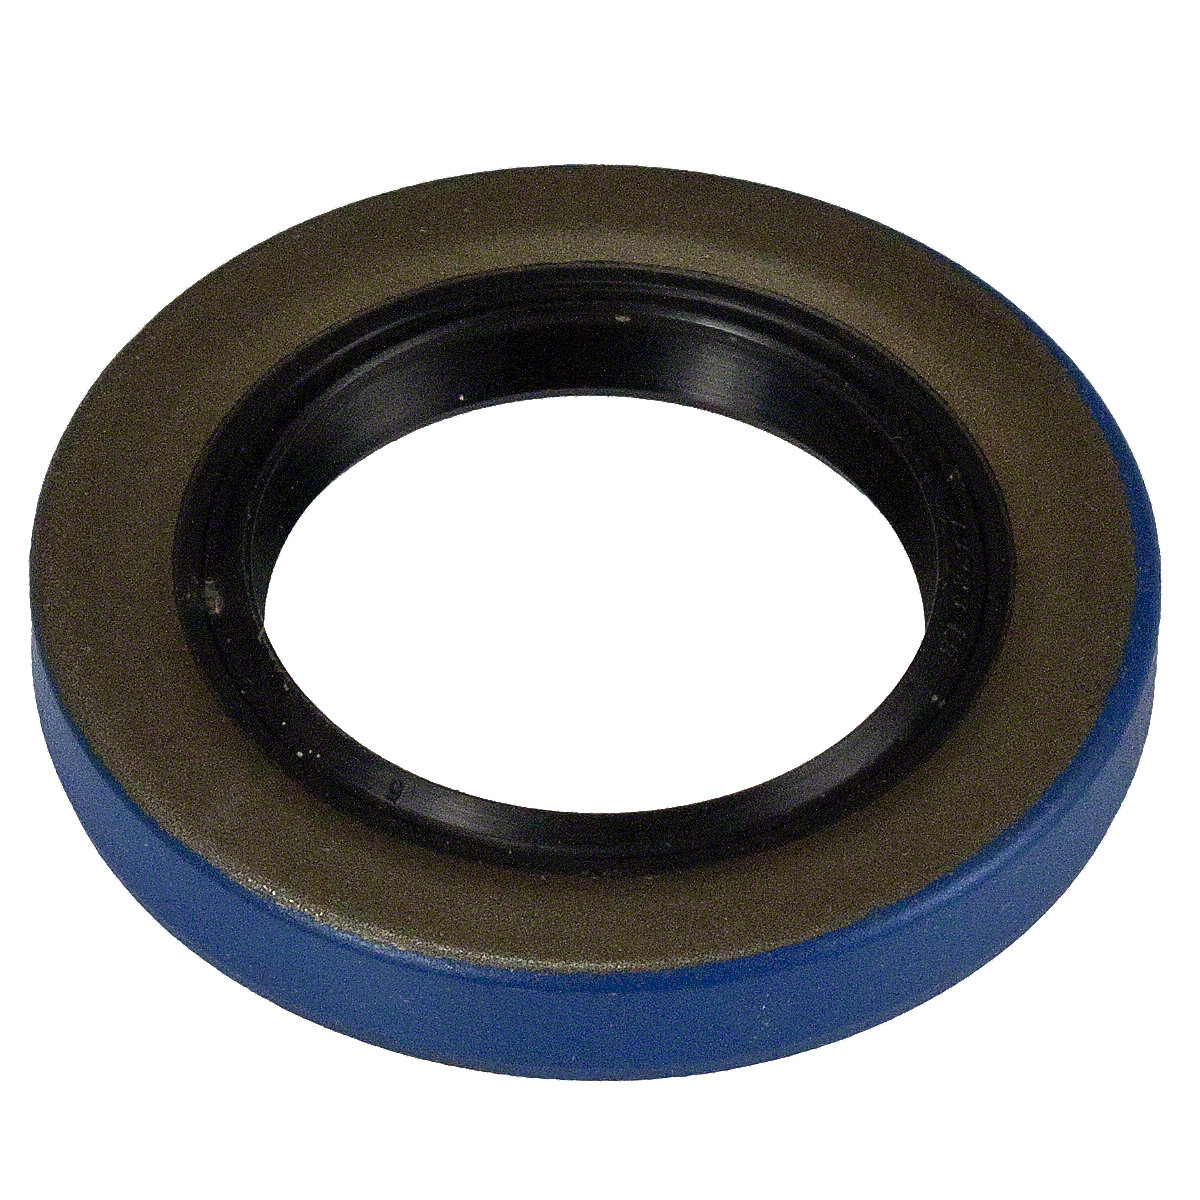 PTO Shaft Seal For Oliver Super 55, 55, 550. Replaces Oliver PN#: 1e1582. 3.13 OD X 2.25 ID X .375 thick.